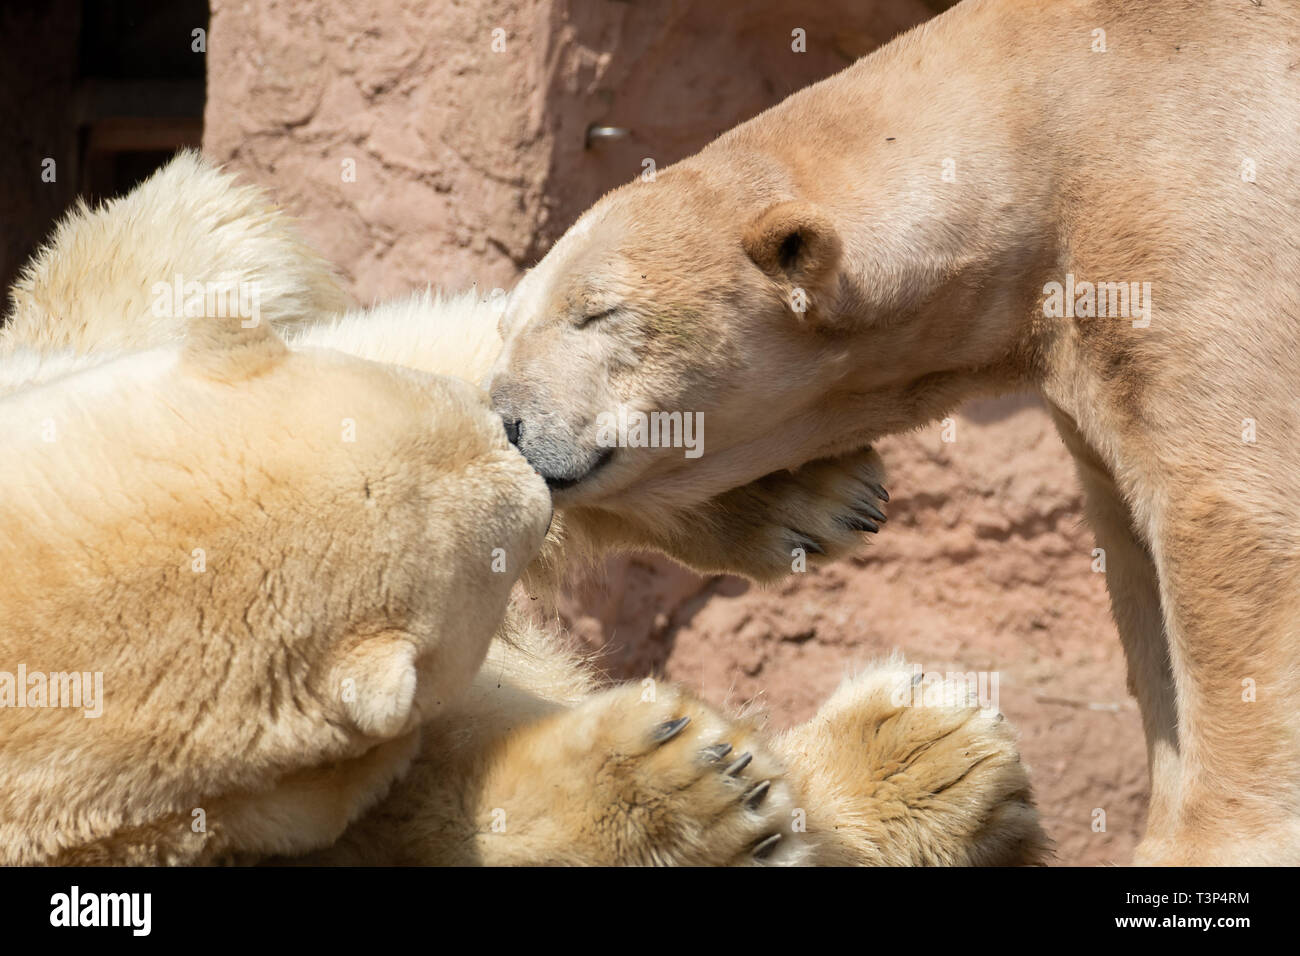 Nürnberg, Allemagne. 11 avril, 2019. L'ours polaire mâle : Nanuq (l) et l'ours polaire femelle Vera résident dans leur enceinte dans le zoo. Arrivés à l'Nanuq Tiergarten le 8 avril 2019. Avant cela, il a vécu pendant neuf ans au Zoo d'Hanovre. Photo : Daniel Karmann/dpa dpa : Crédit photo alliance/Alamy Live News Photo Stock